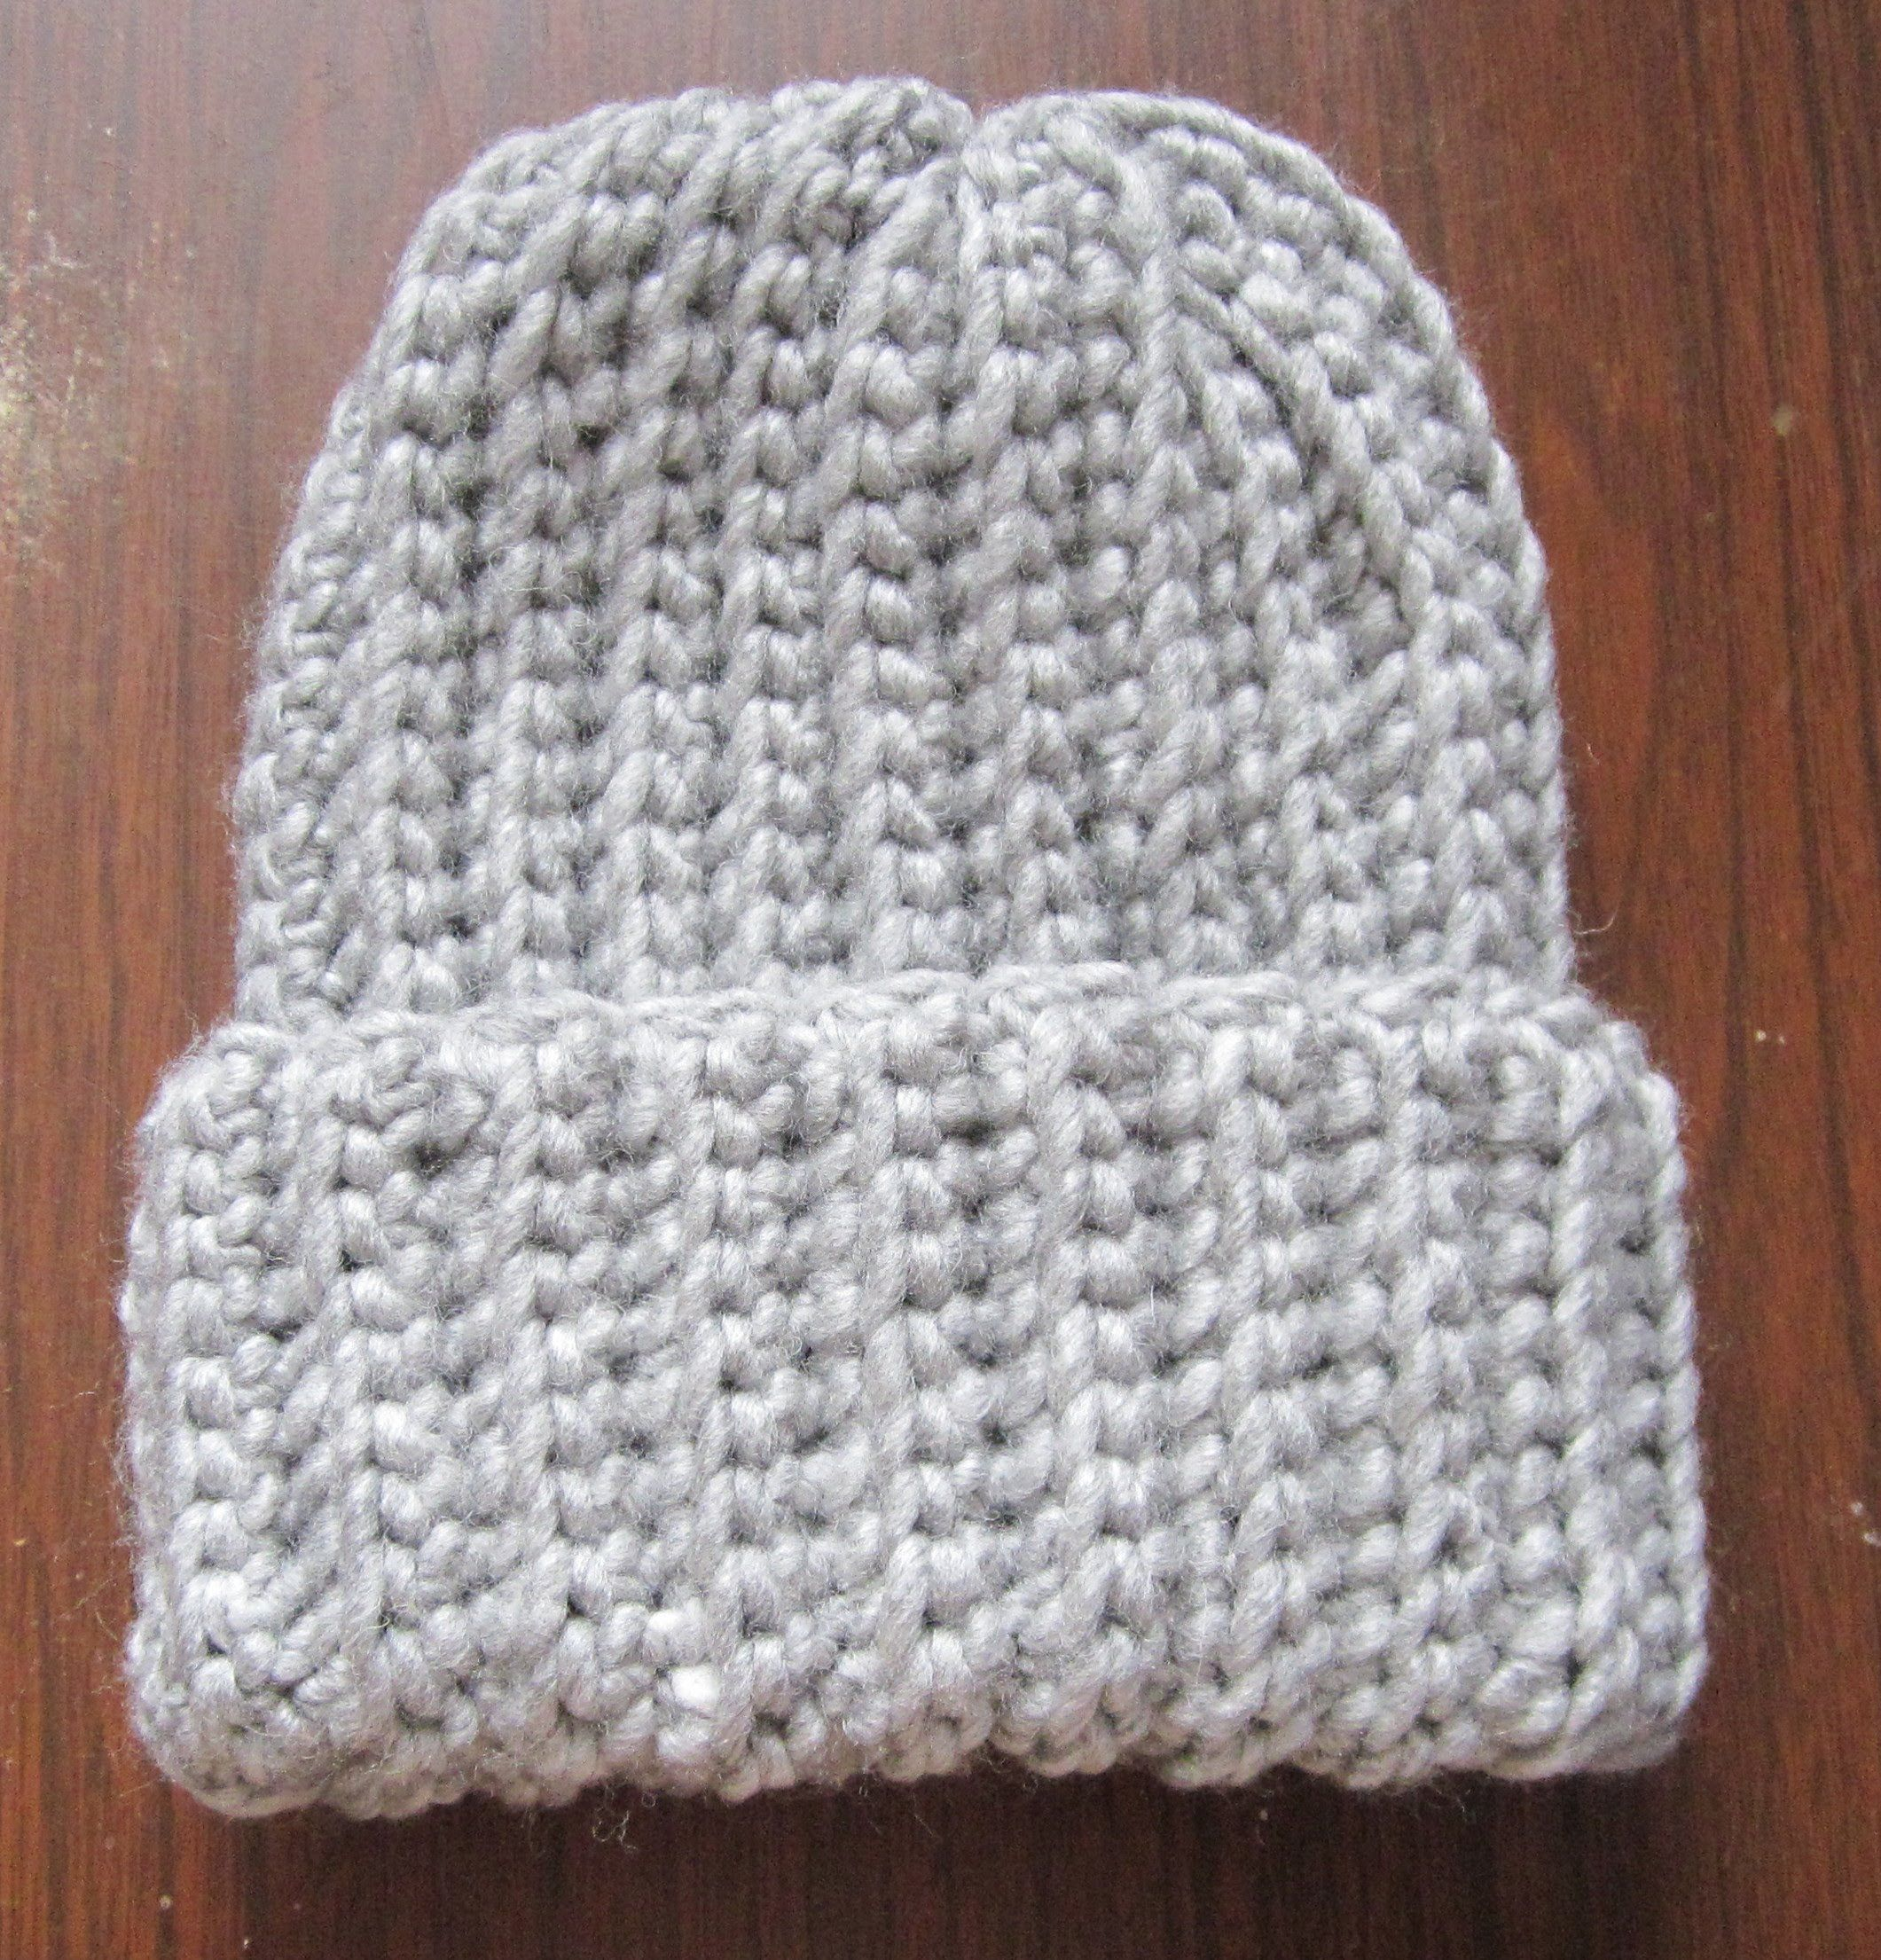 Crochet Ribbed Hat Pattern | Crochet, Decoration and Girls